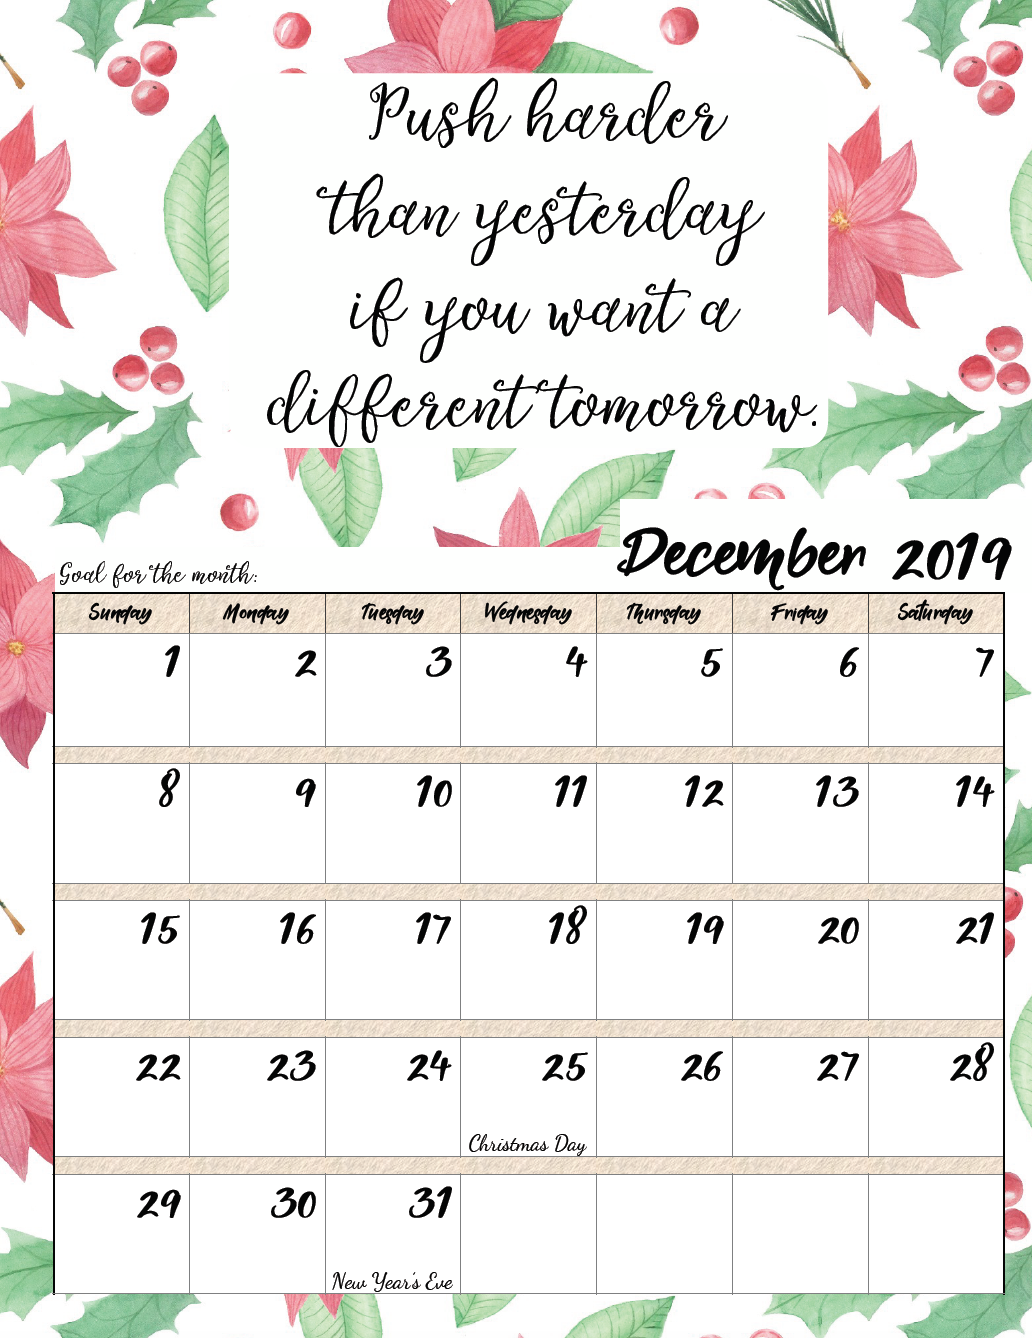 Calendar Quotes For Each Day : Free printable monthly motivational calendars